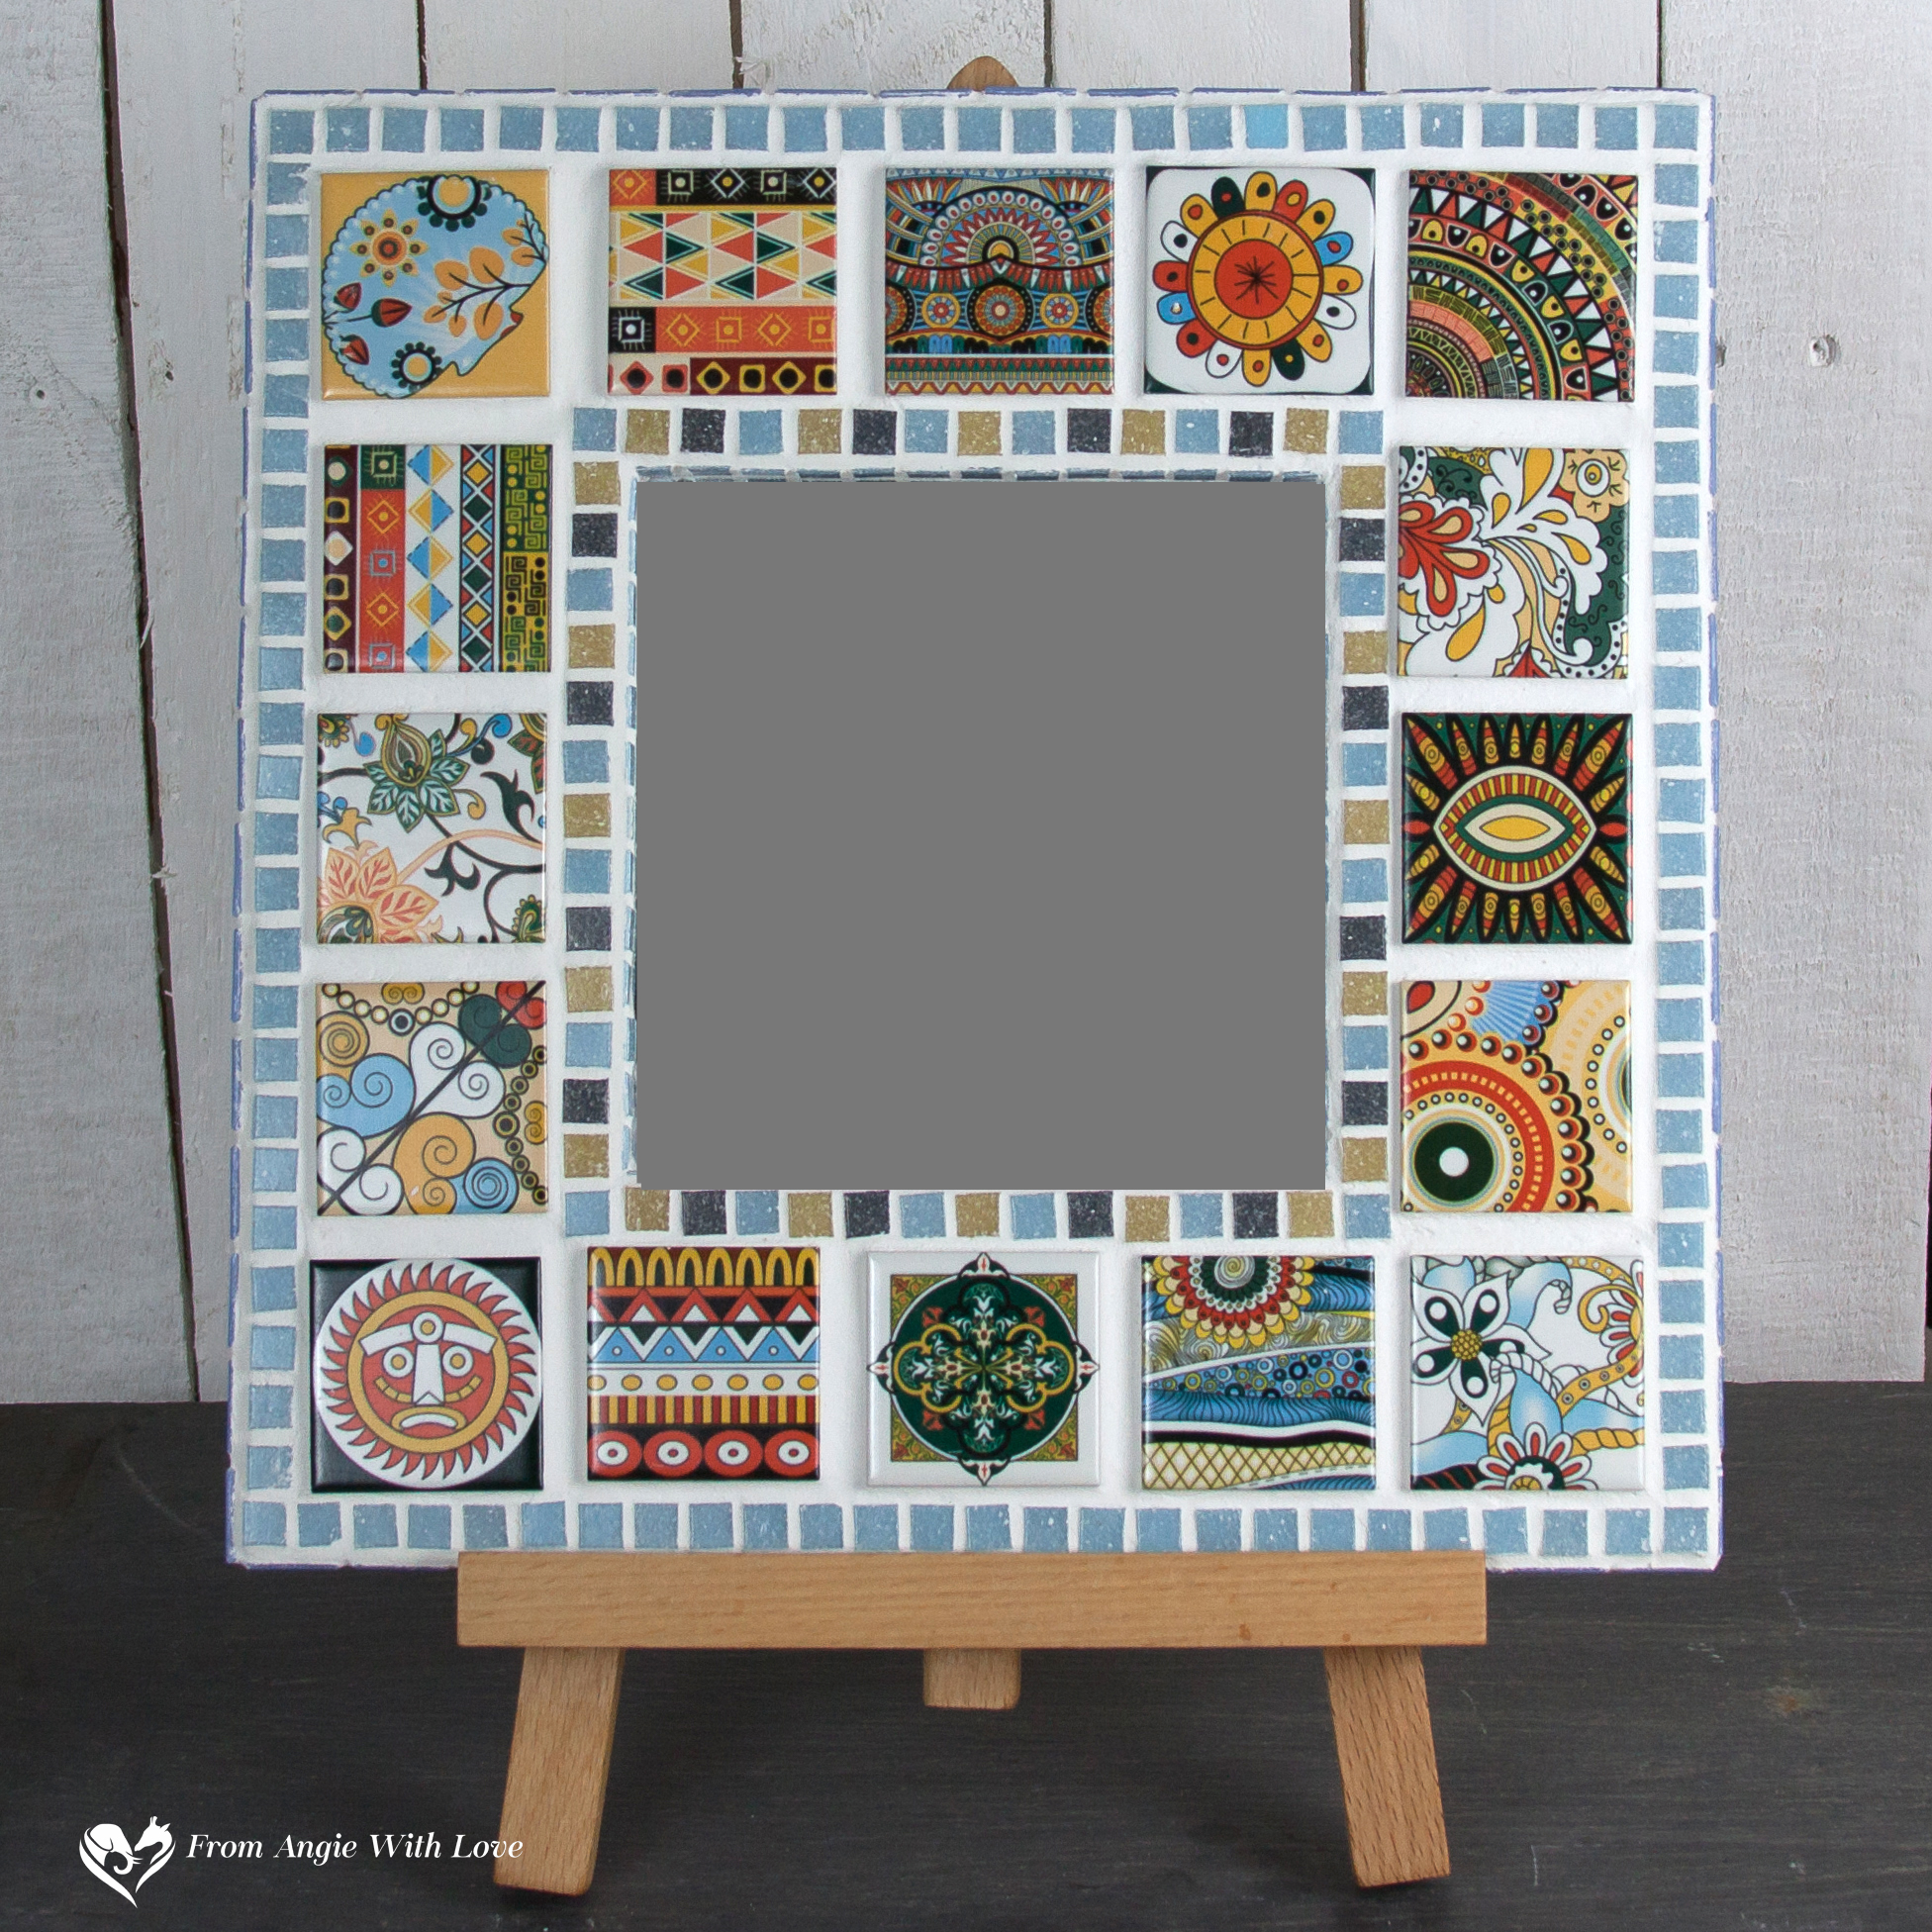 Hand-decorated mosaic mirror with Moroccan-style tiles